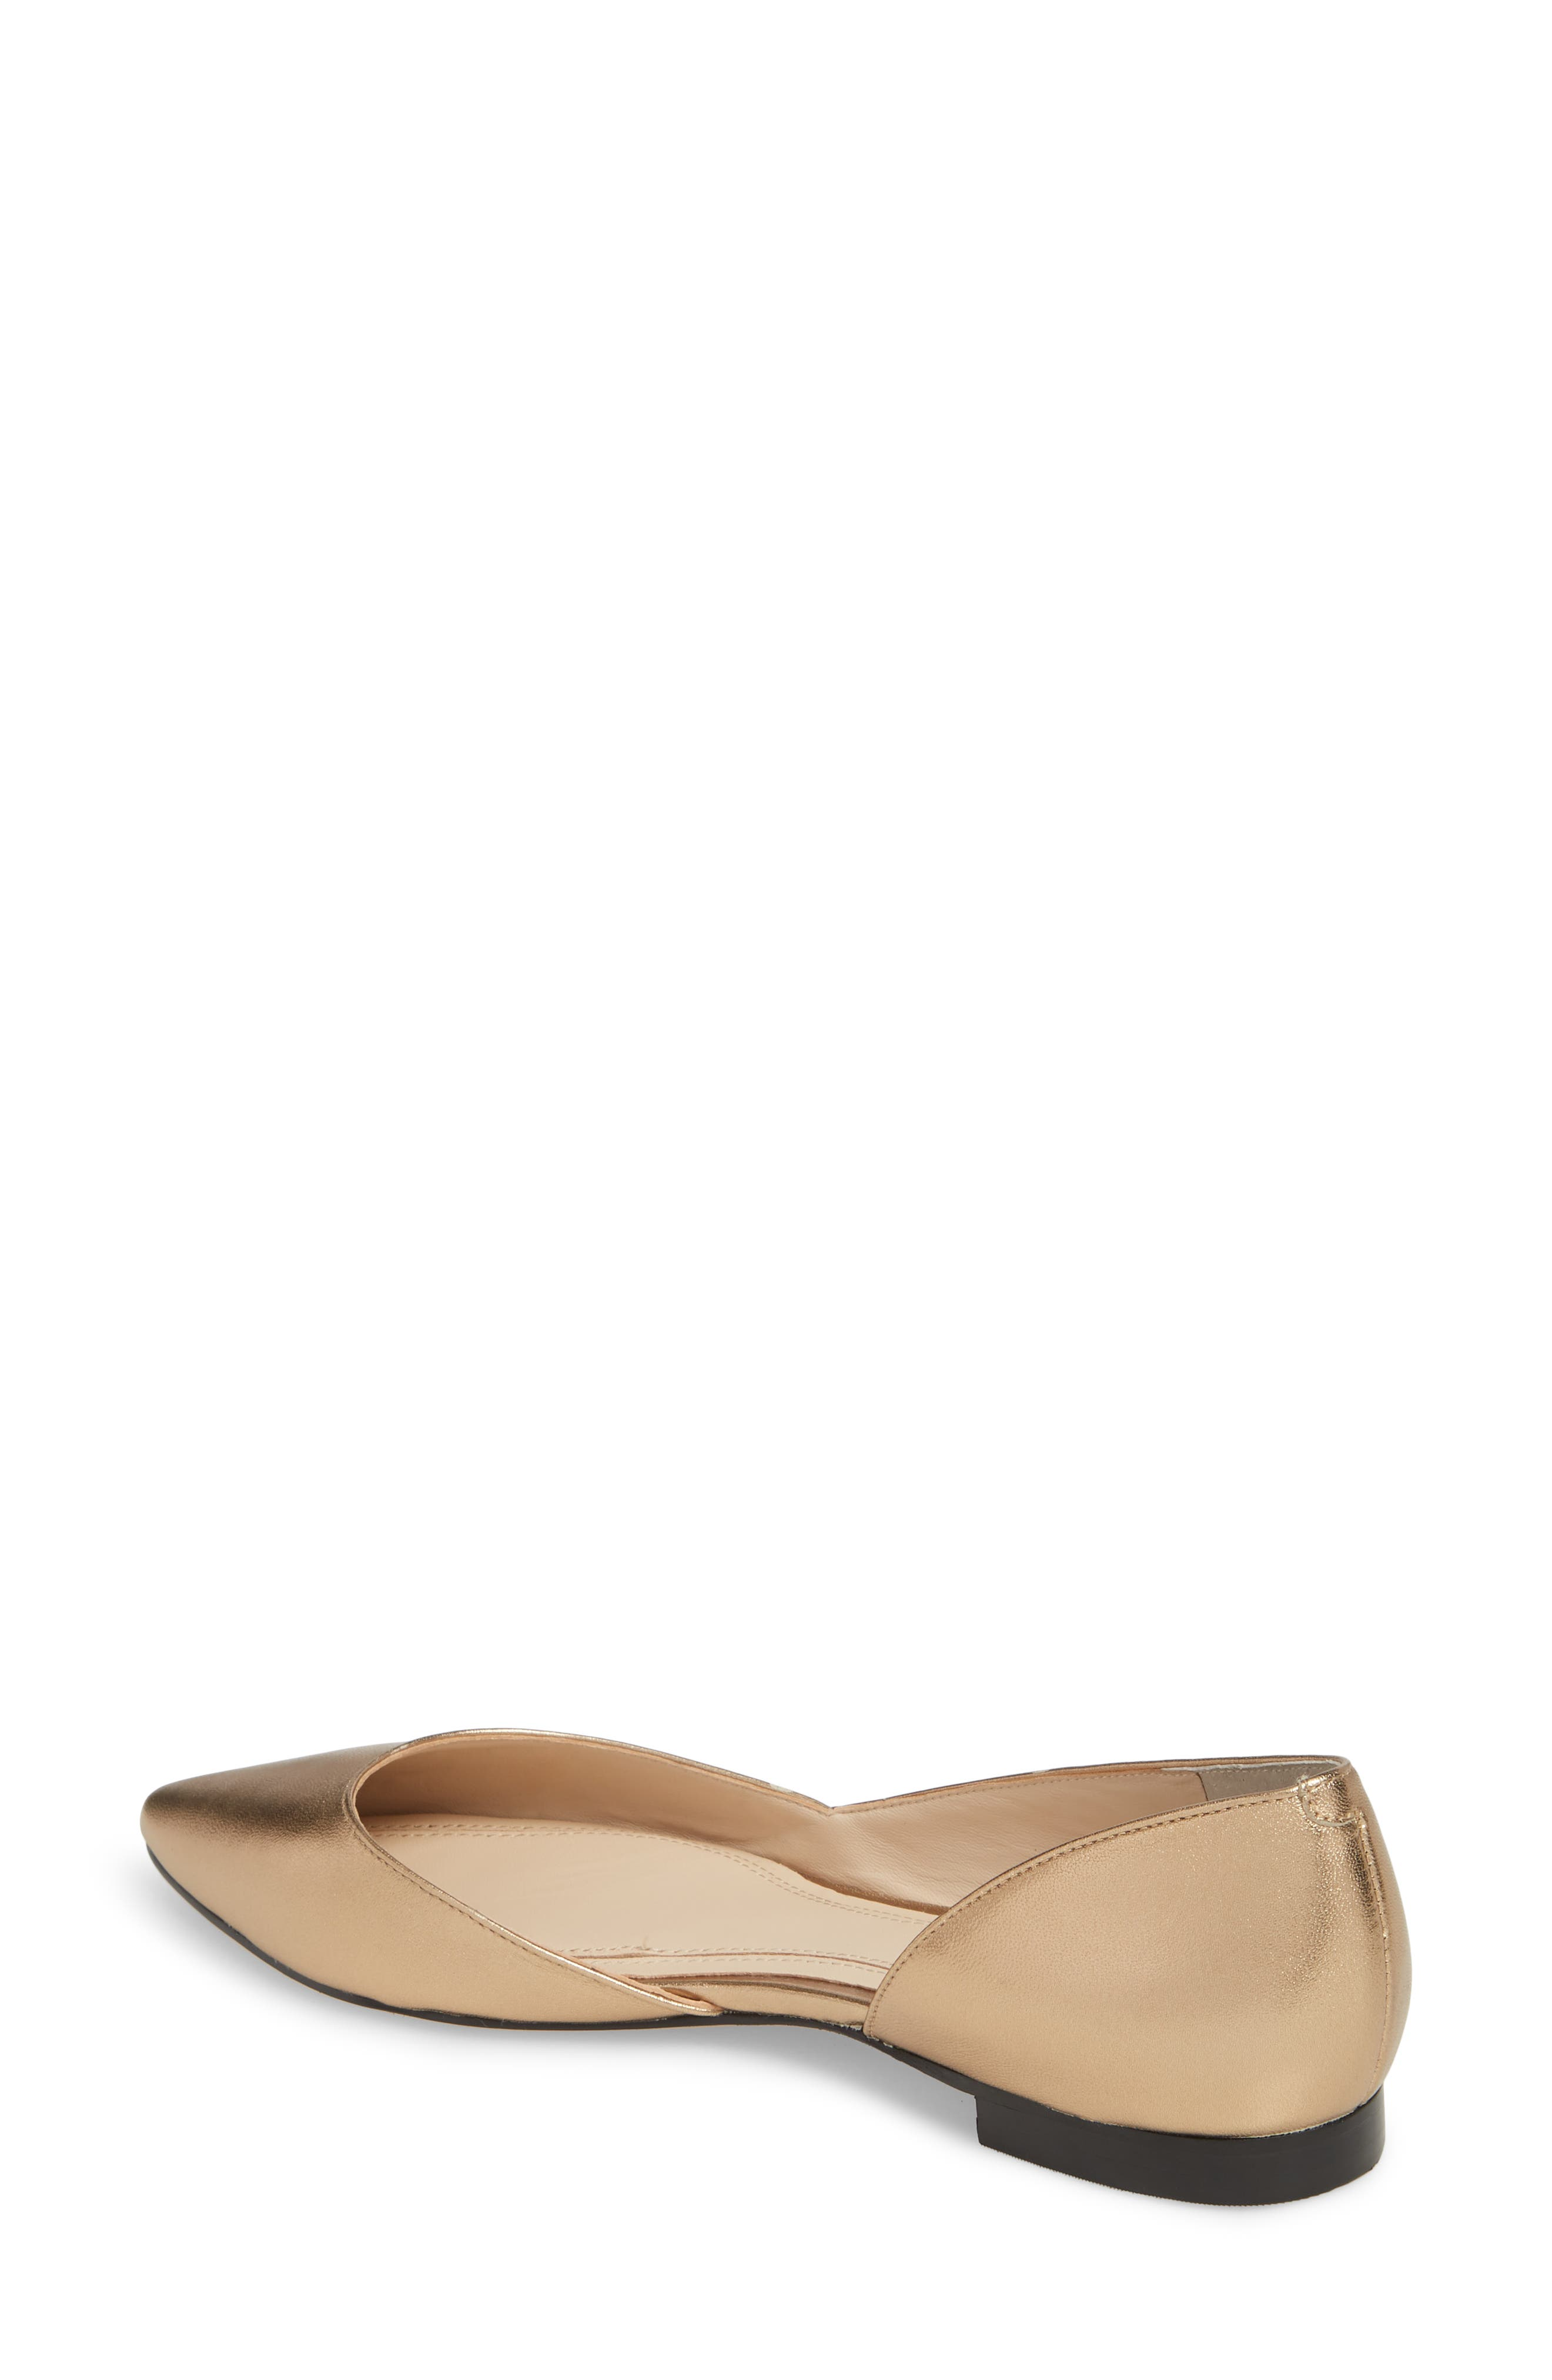 'Sunny' Half d'Orsay Flat,                             Alternate thumbnail 2, color,                             Gold Leather